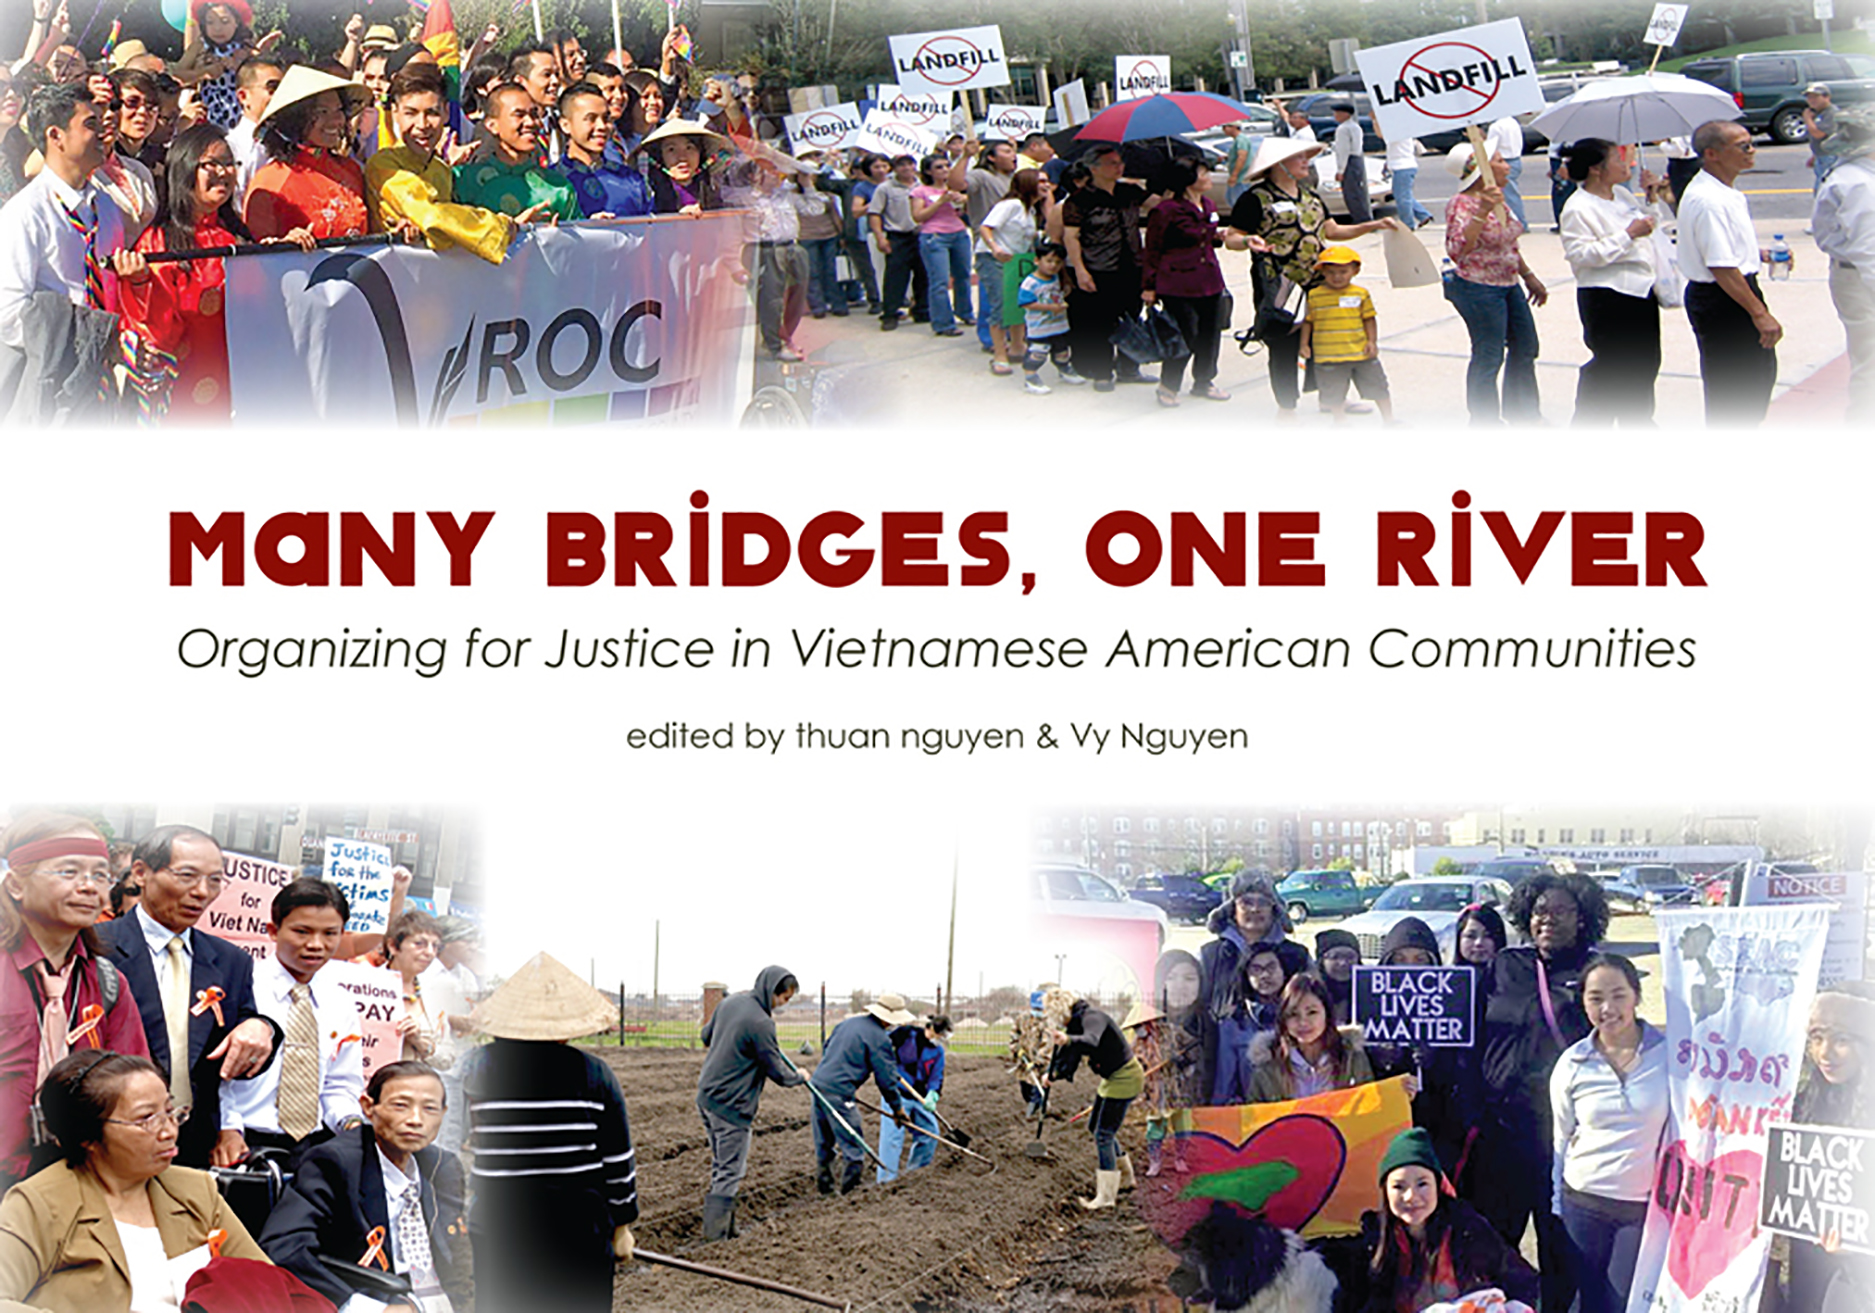 Many Bridges, One River: Organizing for Justice in Vietnamese American Communities